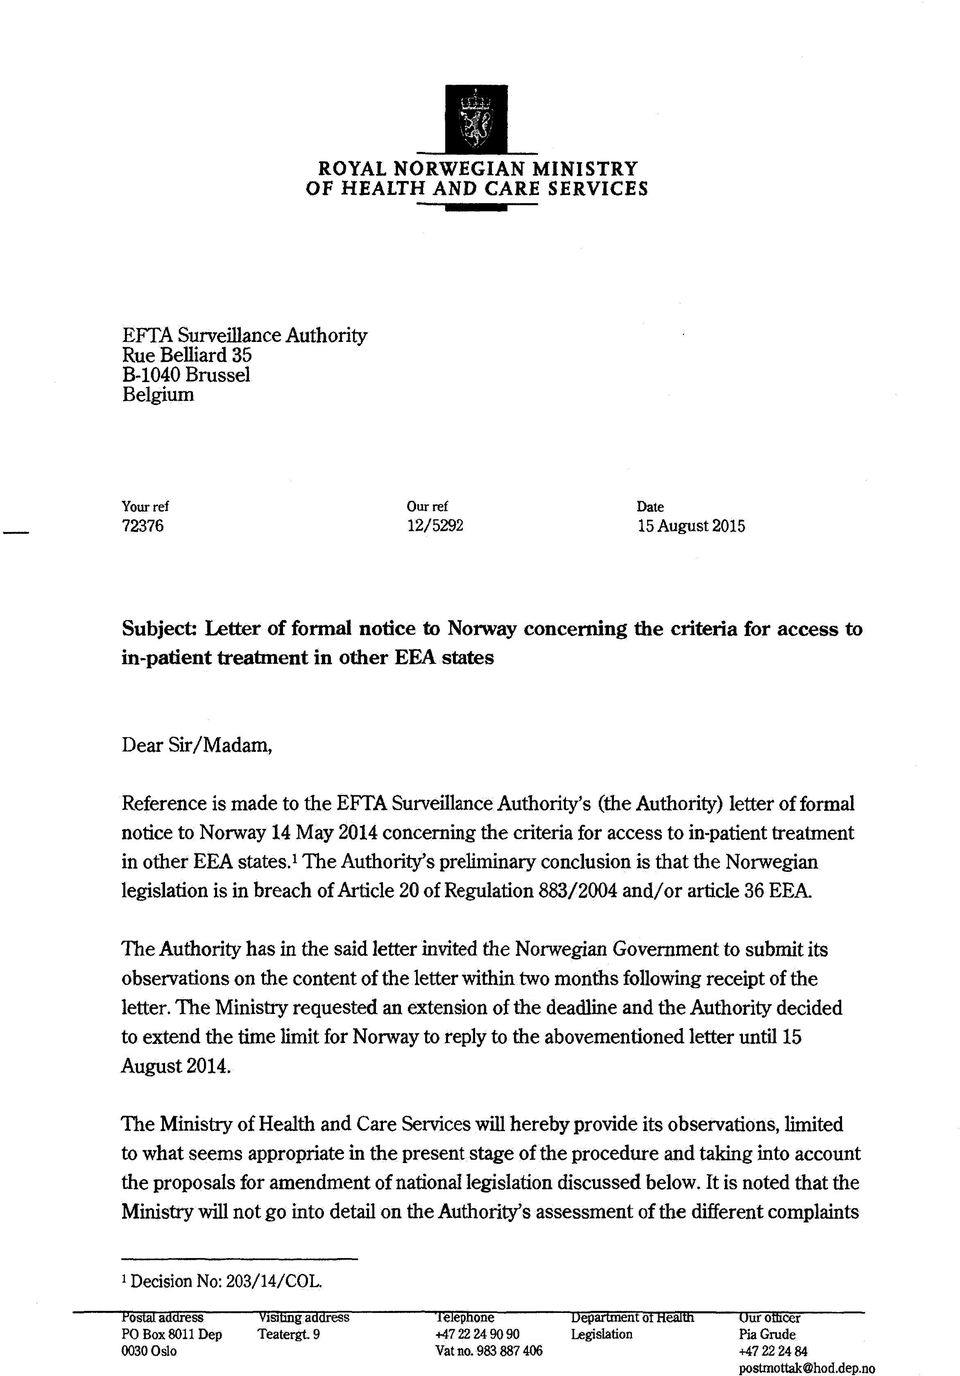 notice to Norway 14 May 2014 concerning the criteria for access to in-patient treatment in other EEA states.